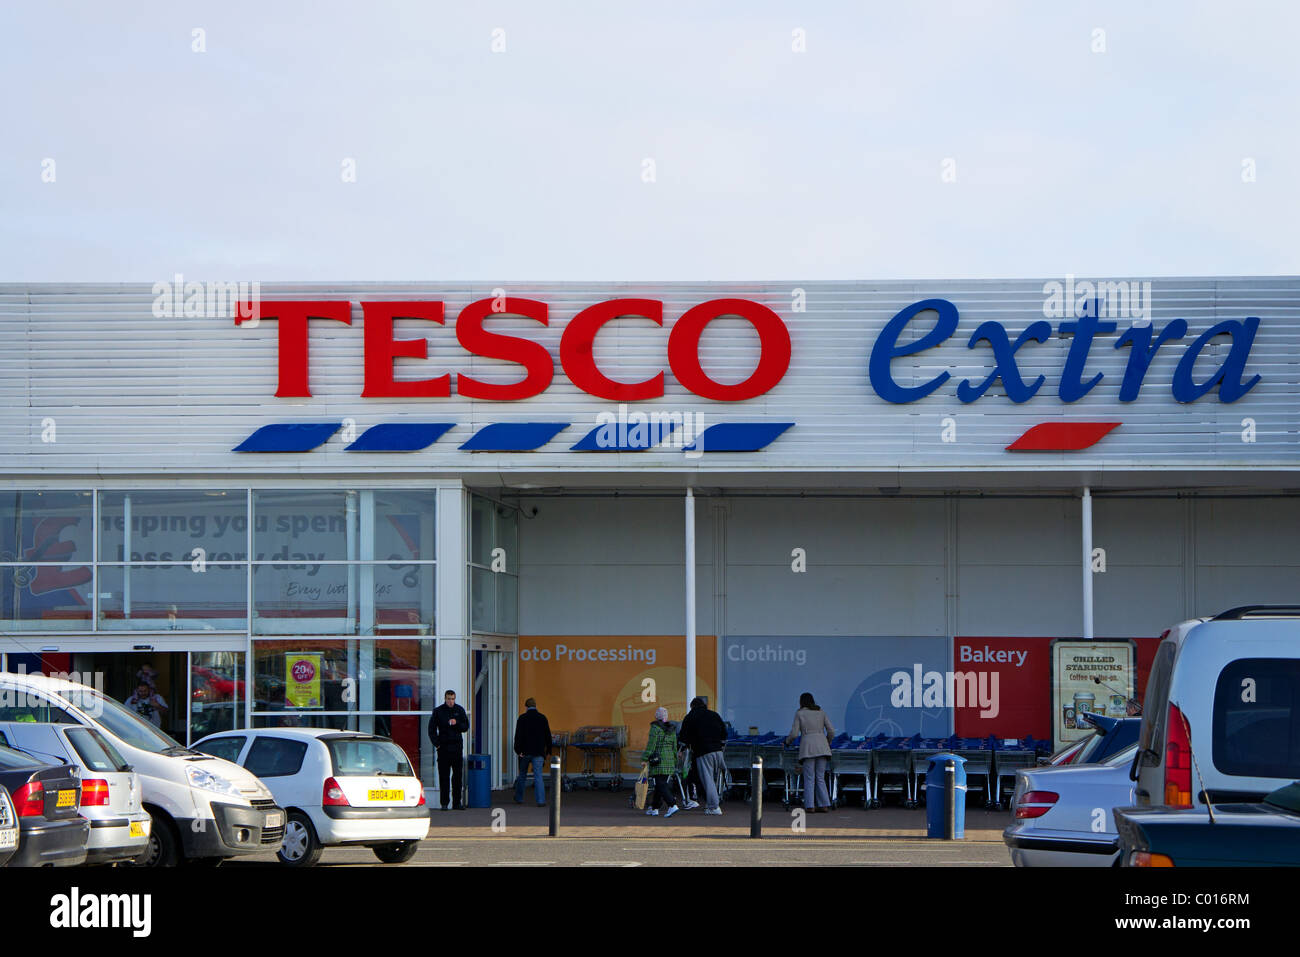 the entrance to tesco extra store in cornwall uk stock photo royalty free image 34448056 alamy. Black Bedroom Furniture Sets. Home Design Ideas